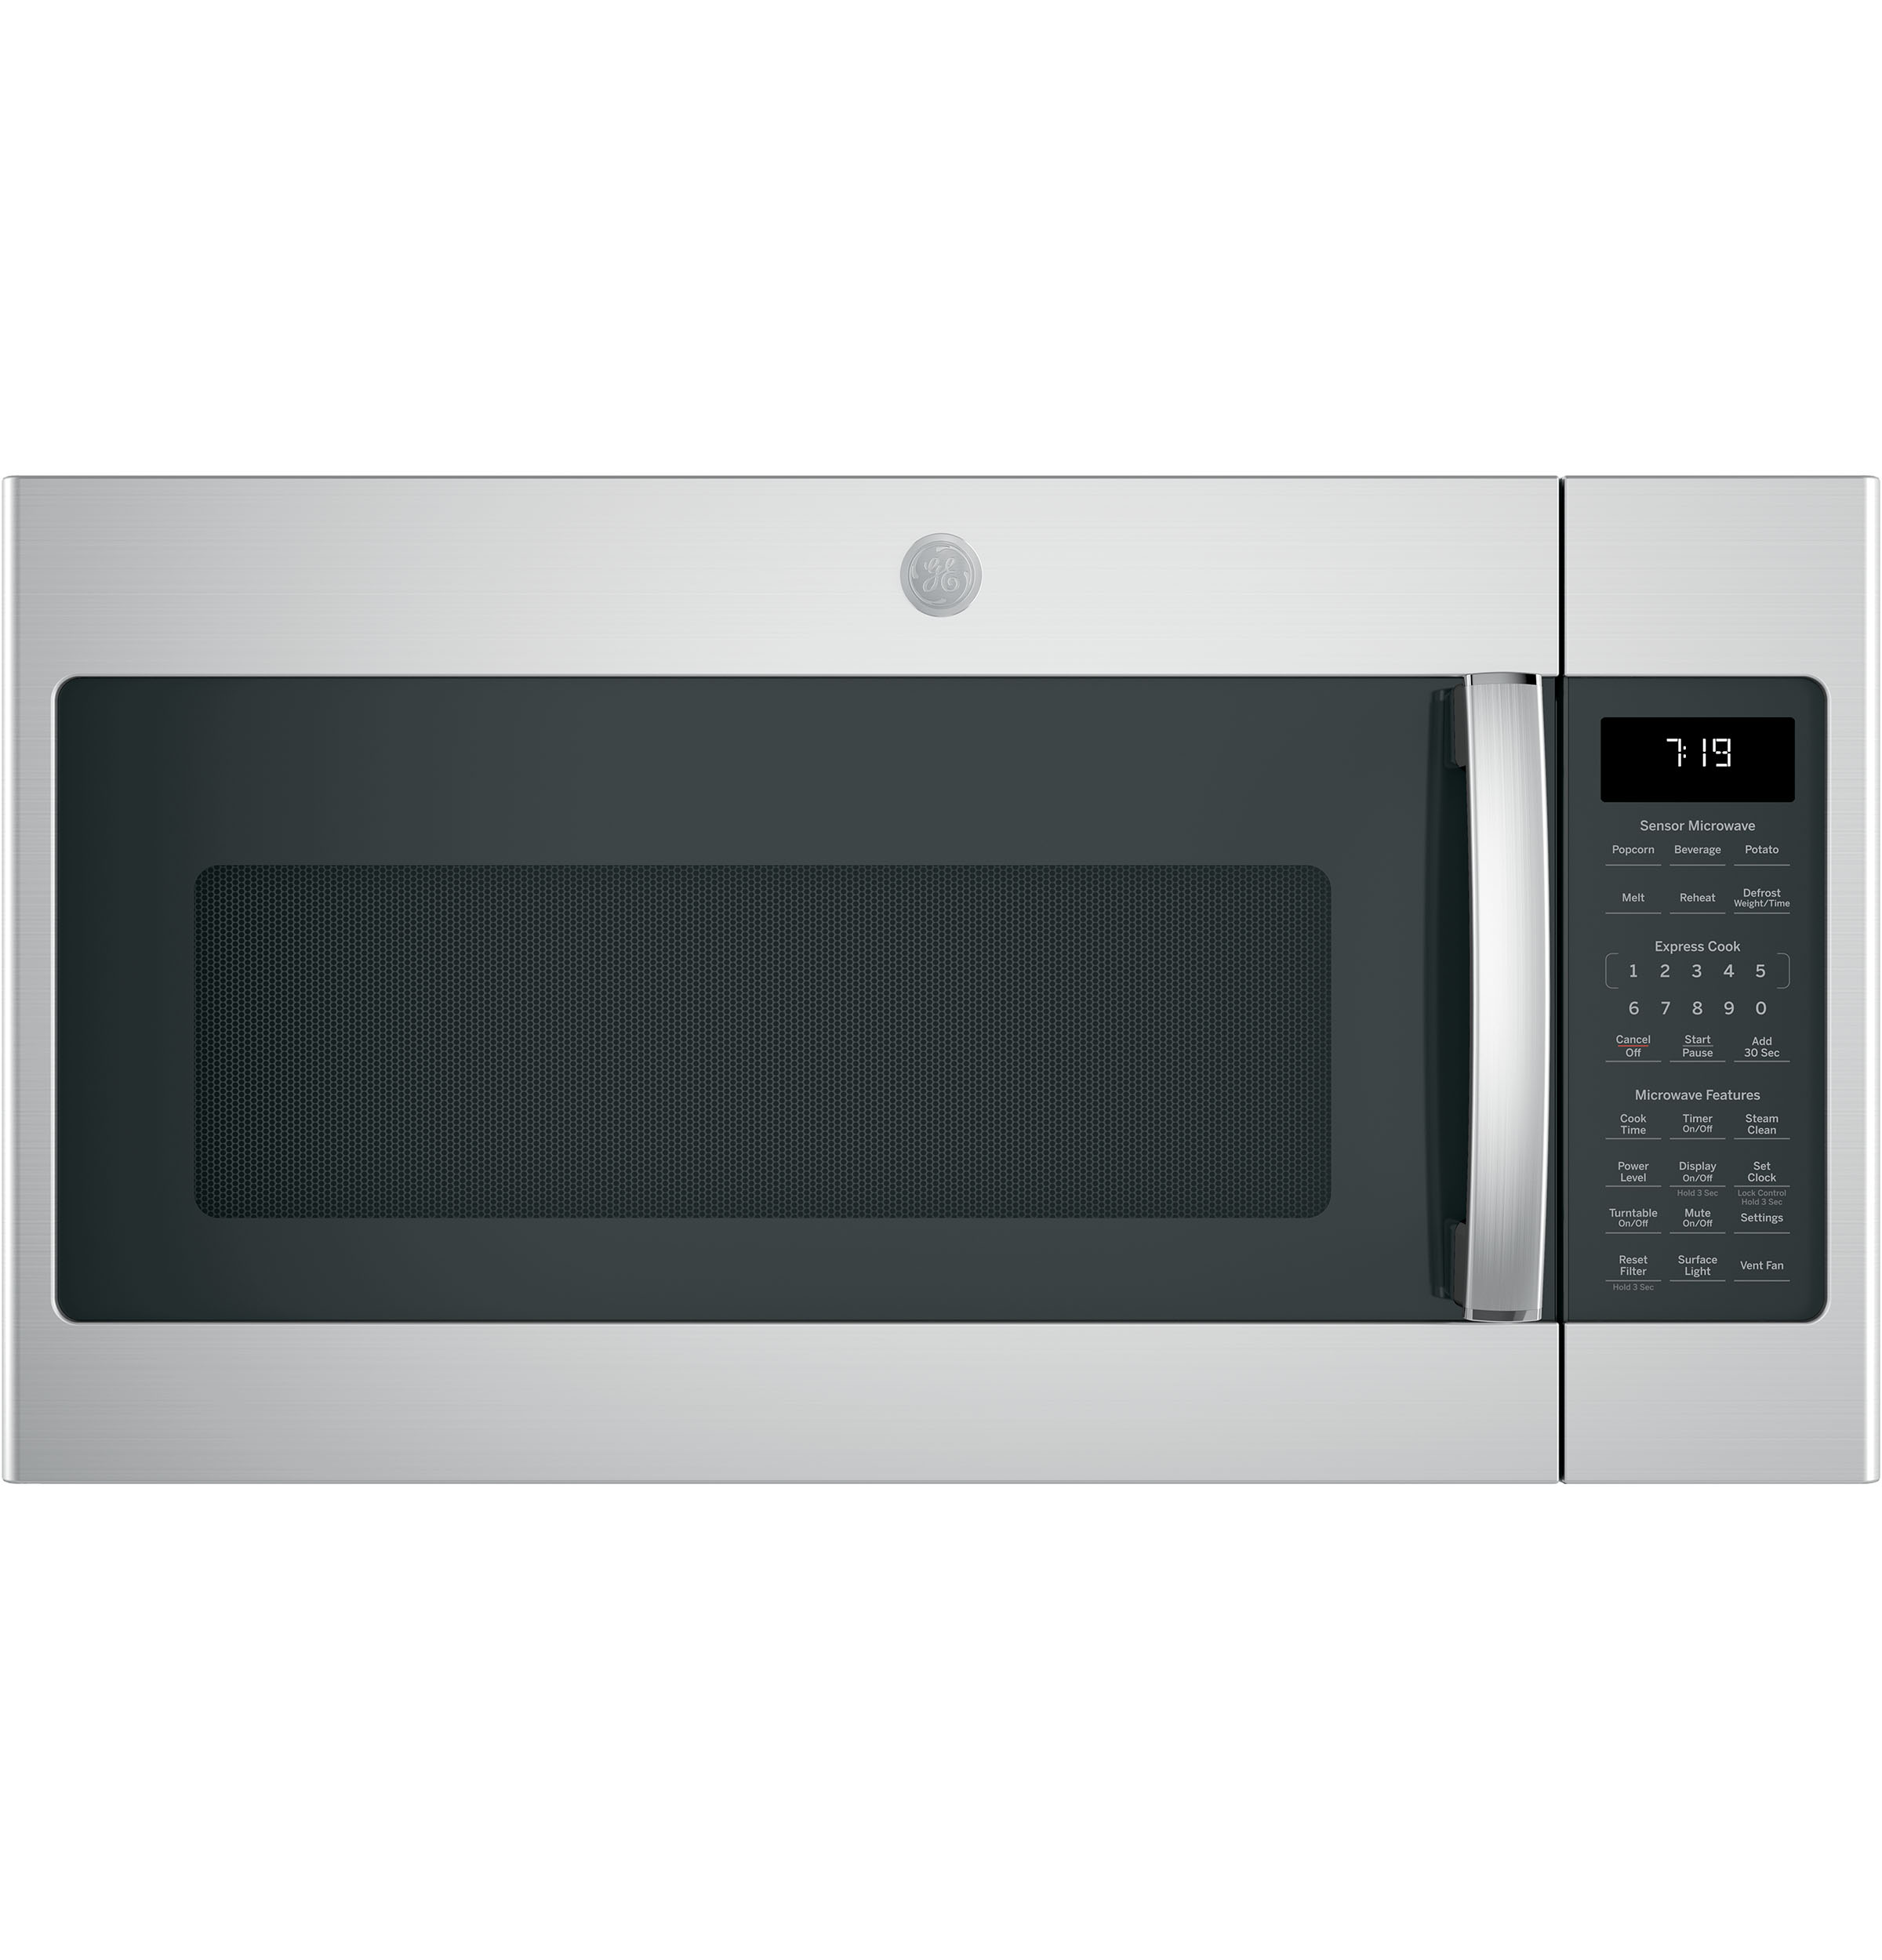 GE GE® 1.9 Cu. Ft. Over-the-Range Sensor Microwave Oven with Recirculating Venting